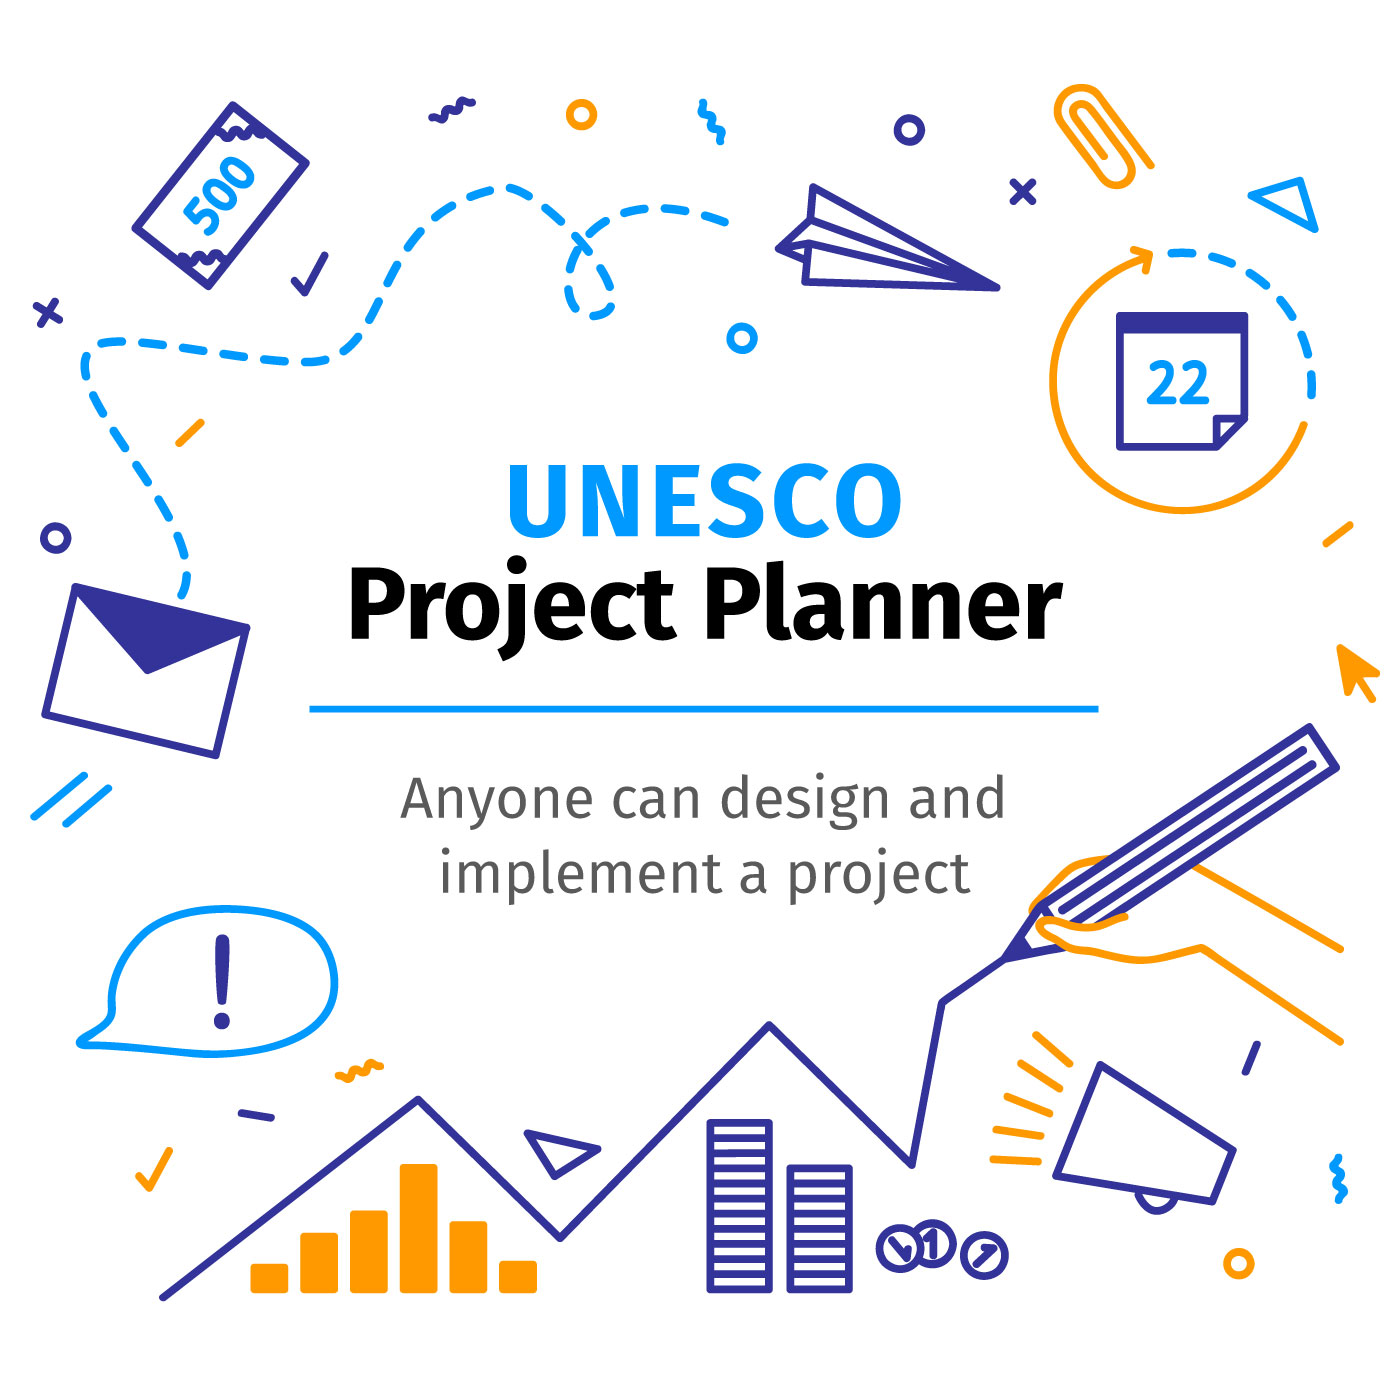 unesco project planner top tips for youth action